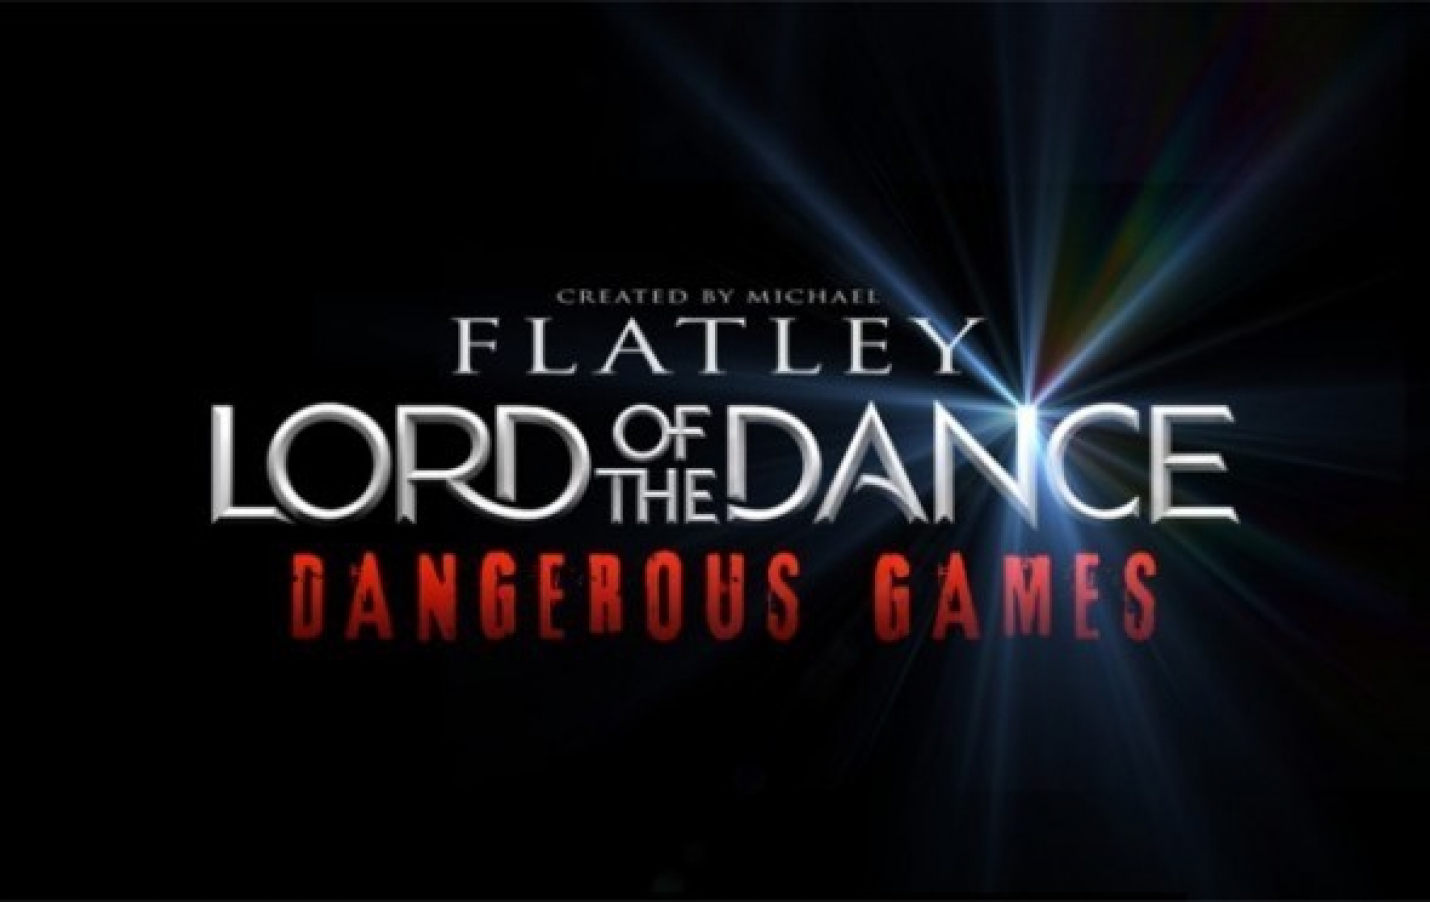 Lord of the Dance - Dangerous Games